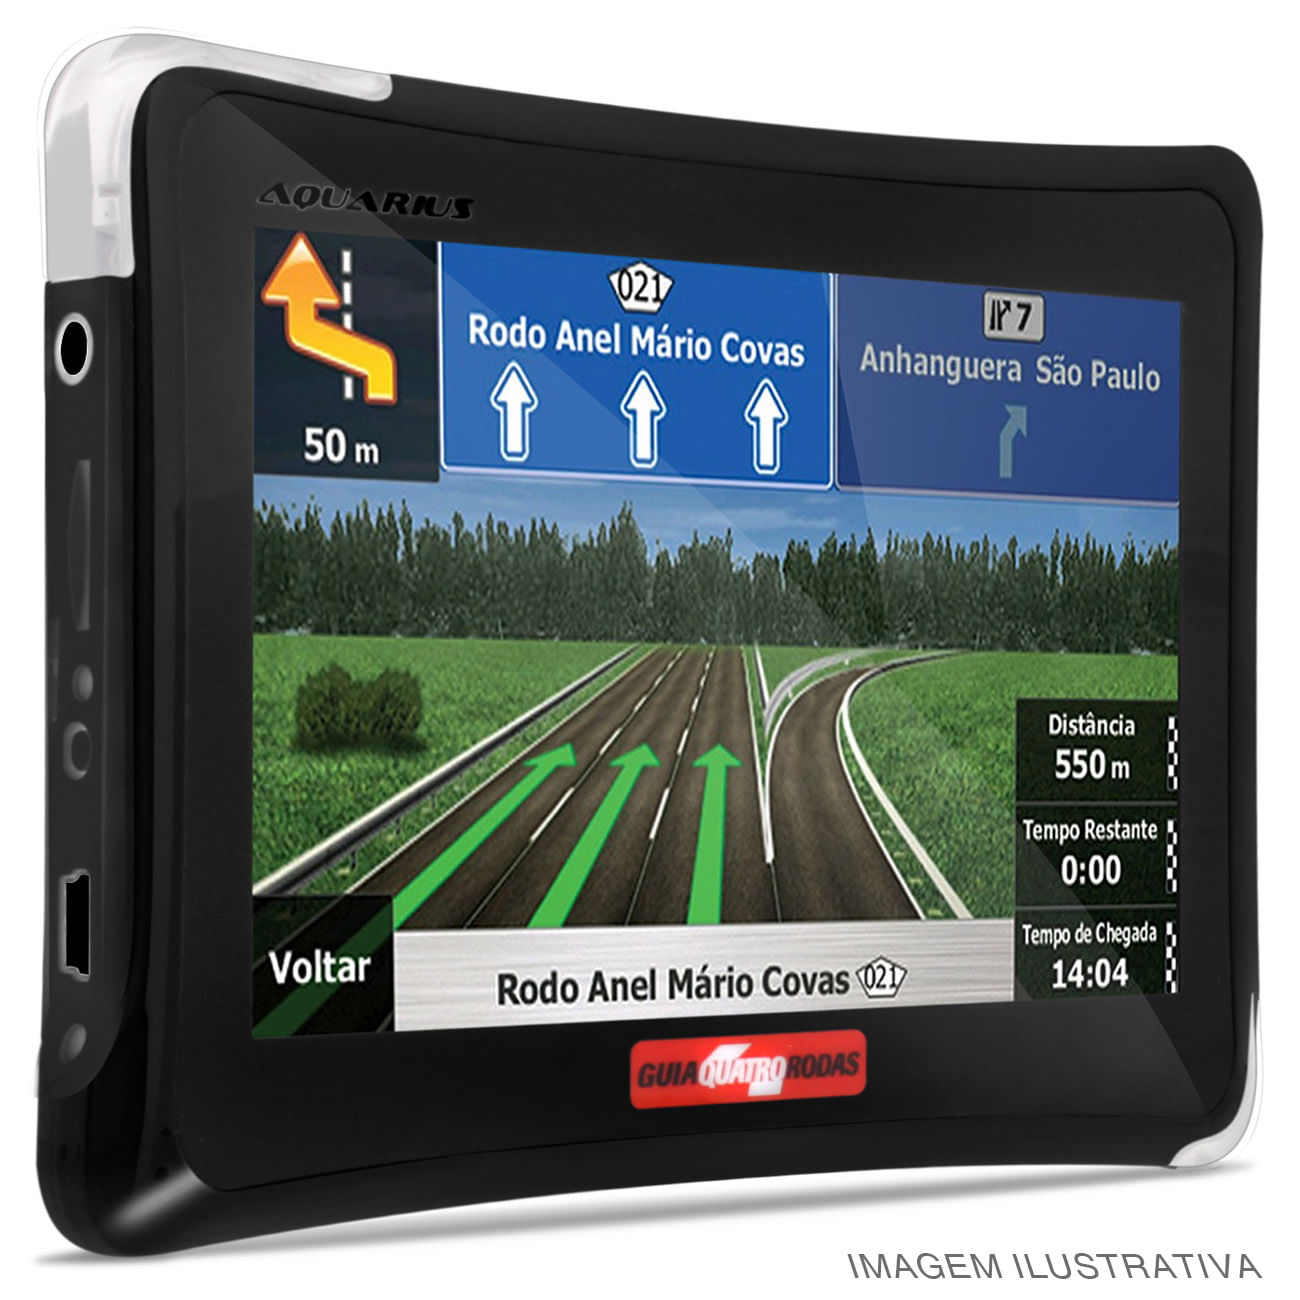 GPS Automotivo Aquarius Guia Quatro Rodas 4,3 Polegadas + TV